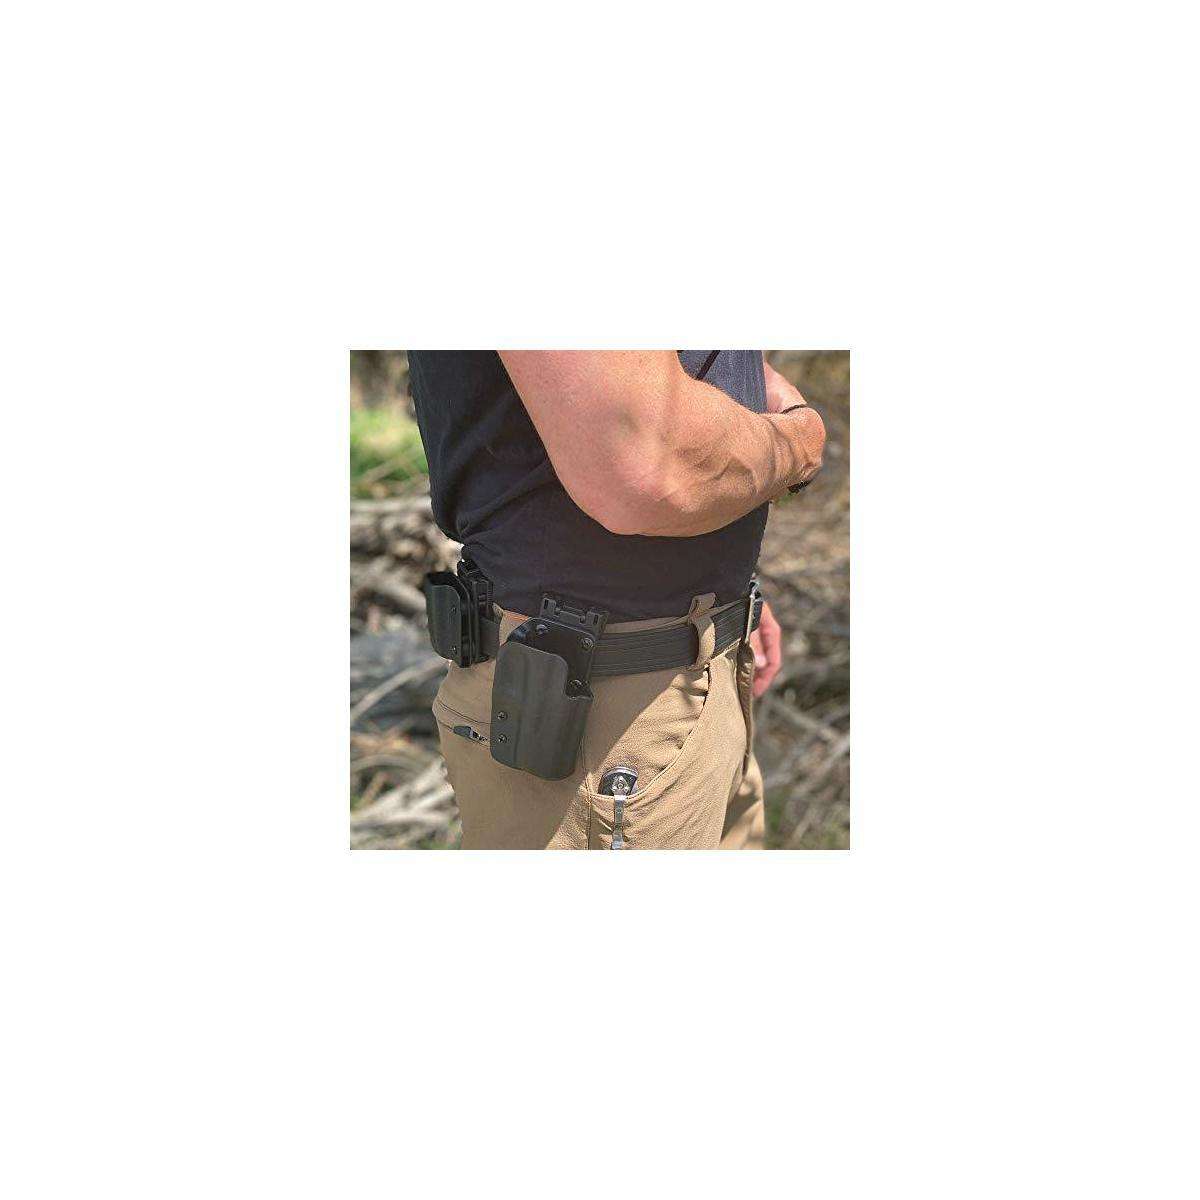 Biothane Heavy Duty Cut to Fit Tactical Concealed Carry Gun Belt | CCW | Stretch Proof | Made in USA